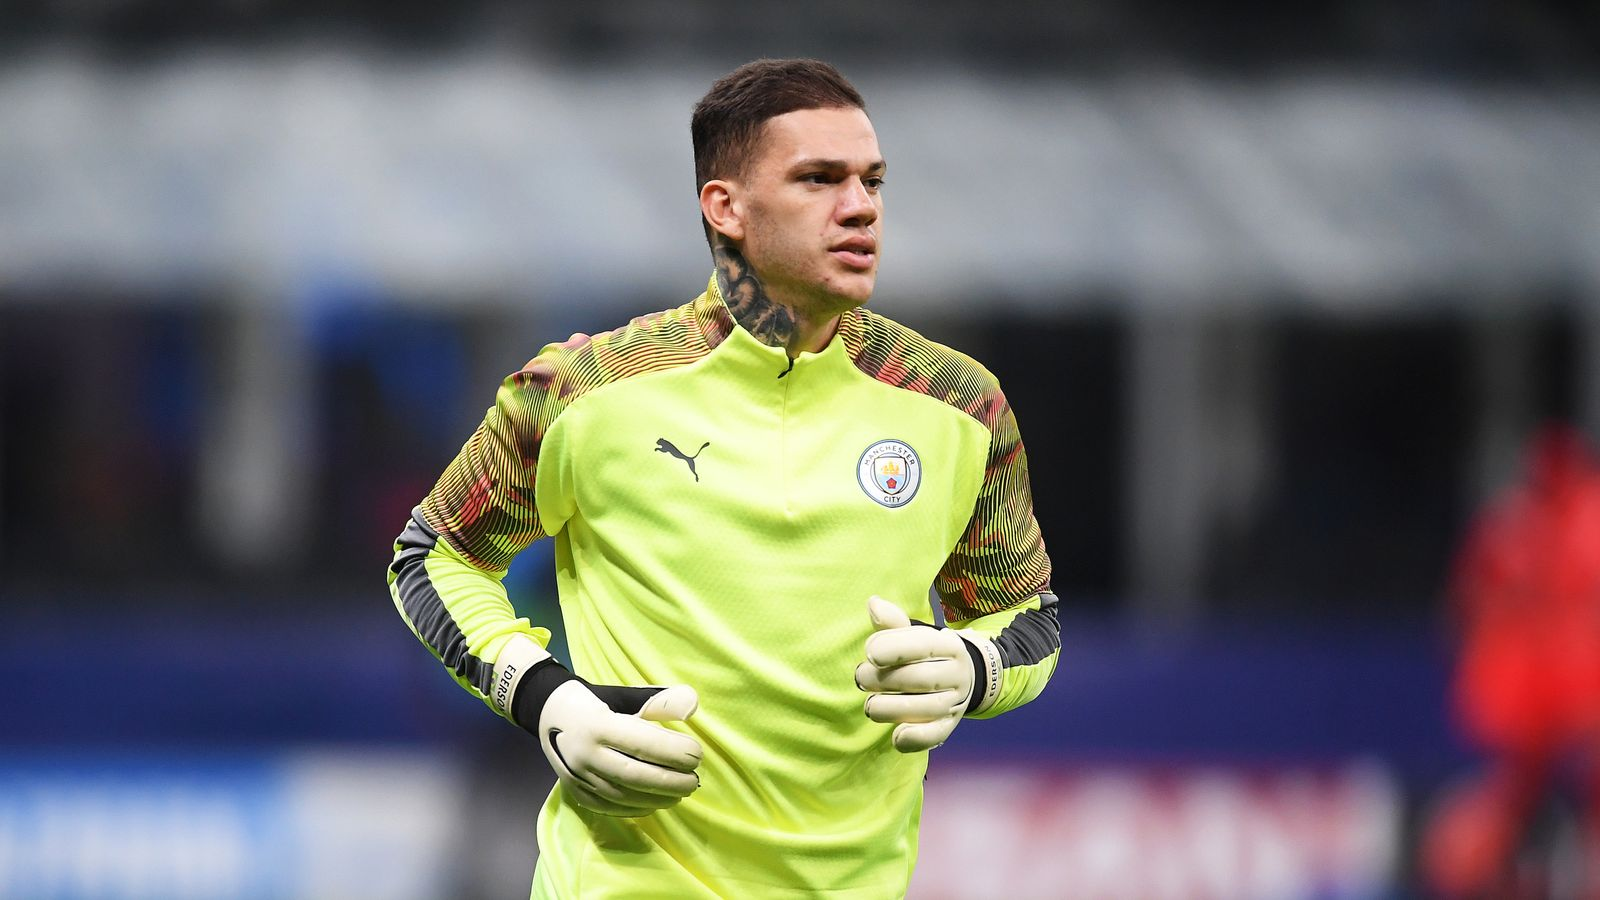 Ederson out of Liverpool vs Manchester City with injury